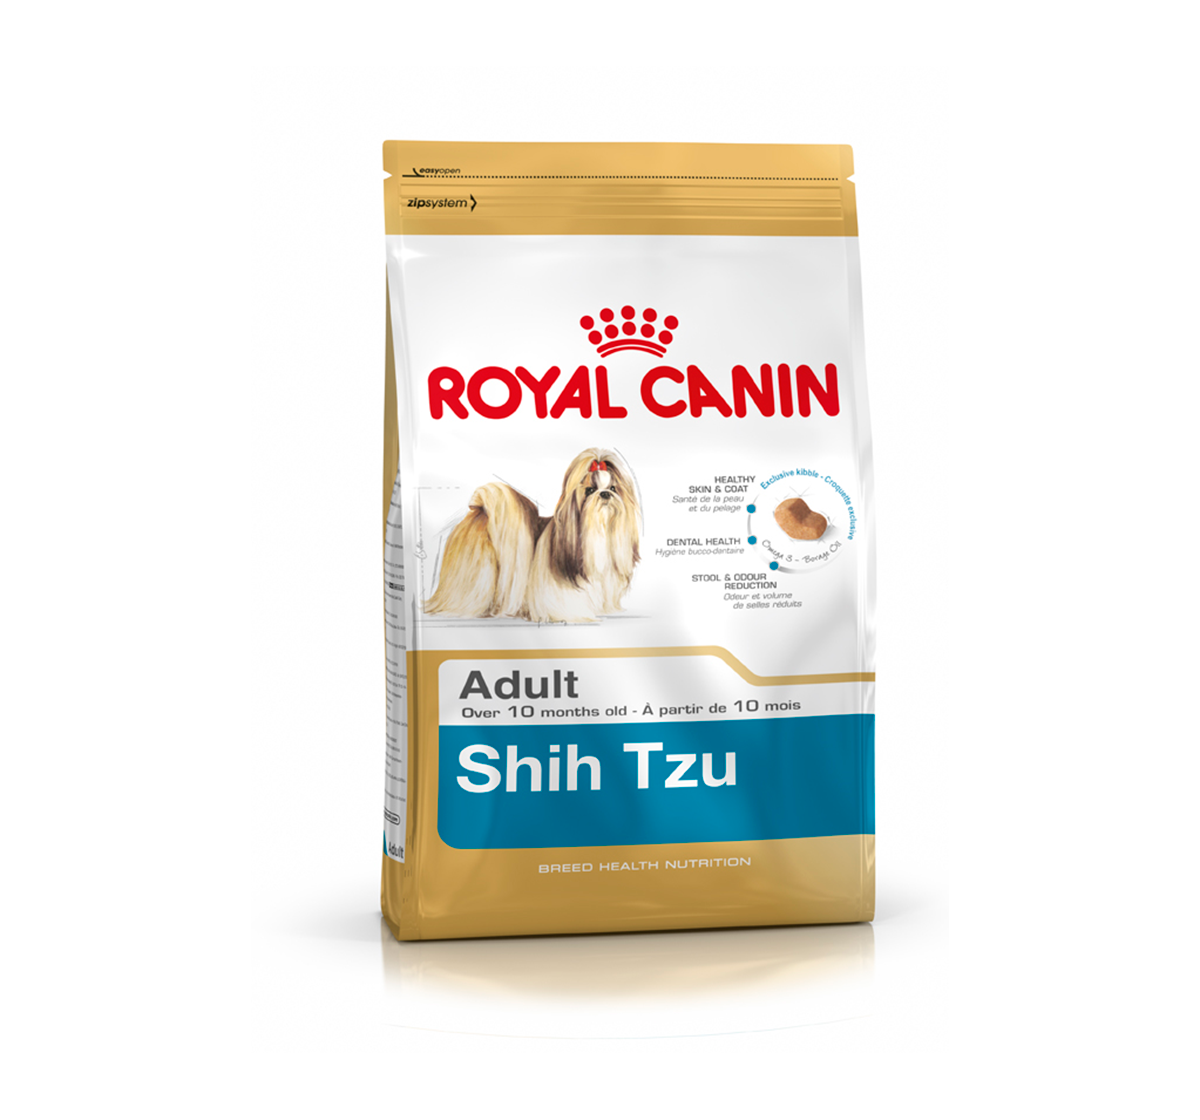 Royal Canin Shih Tzu Adult - 500 gm